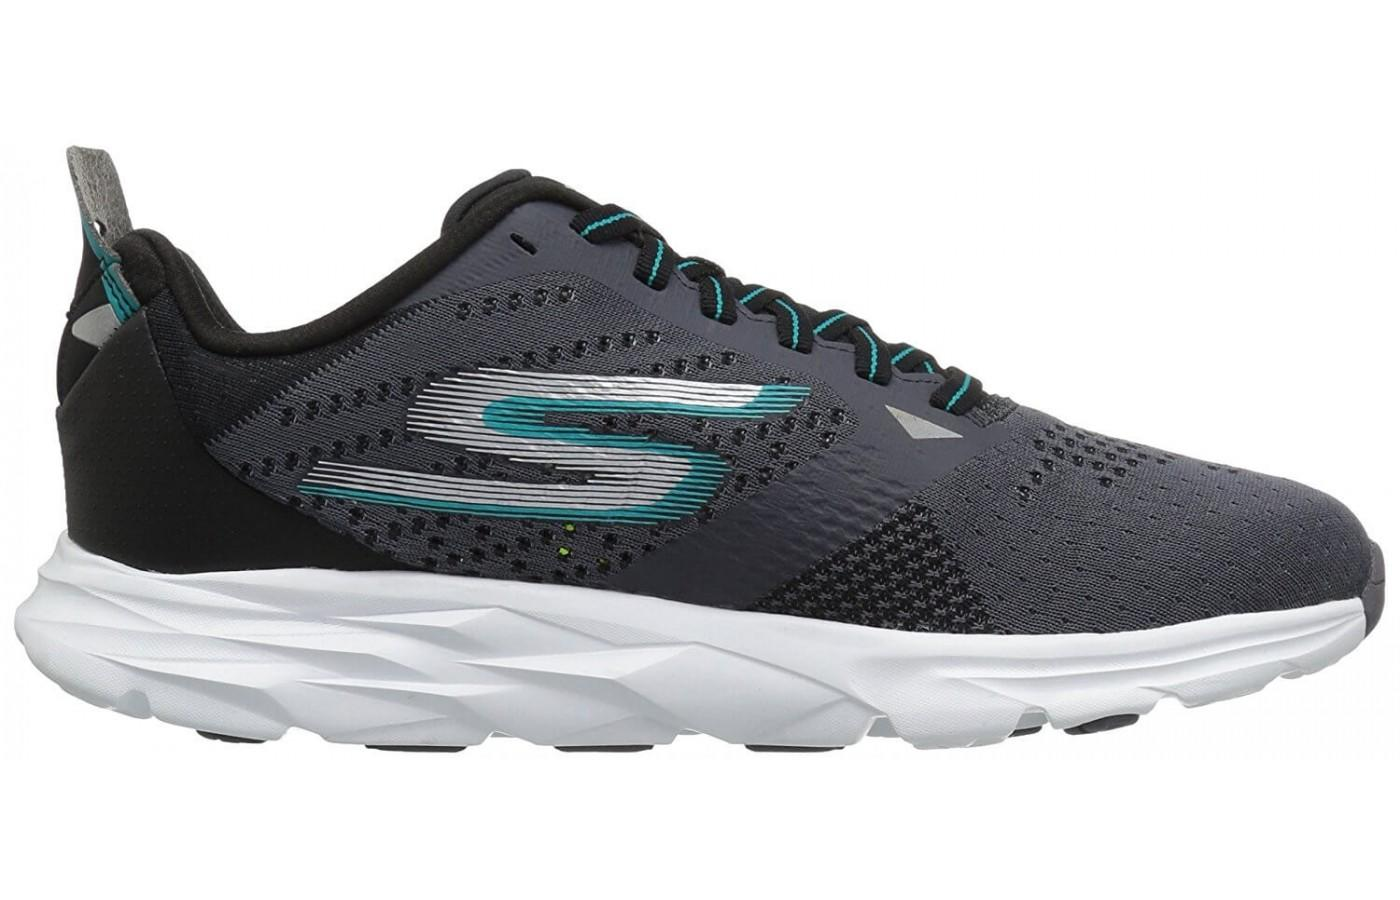 4d16b3a7bd04 Skechers GOrun Ride 6 Review - Buy or Not in Apr 2019